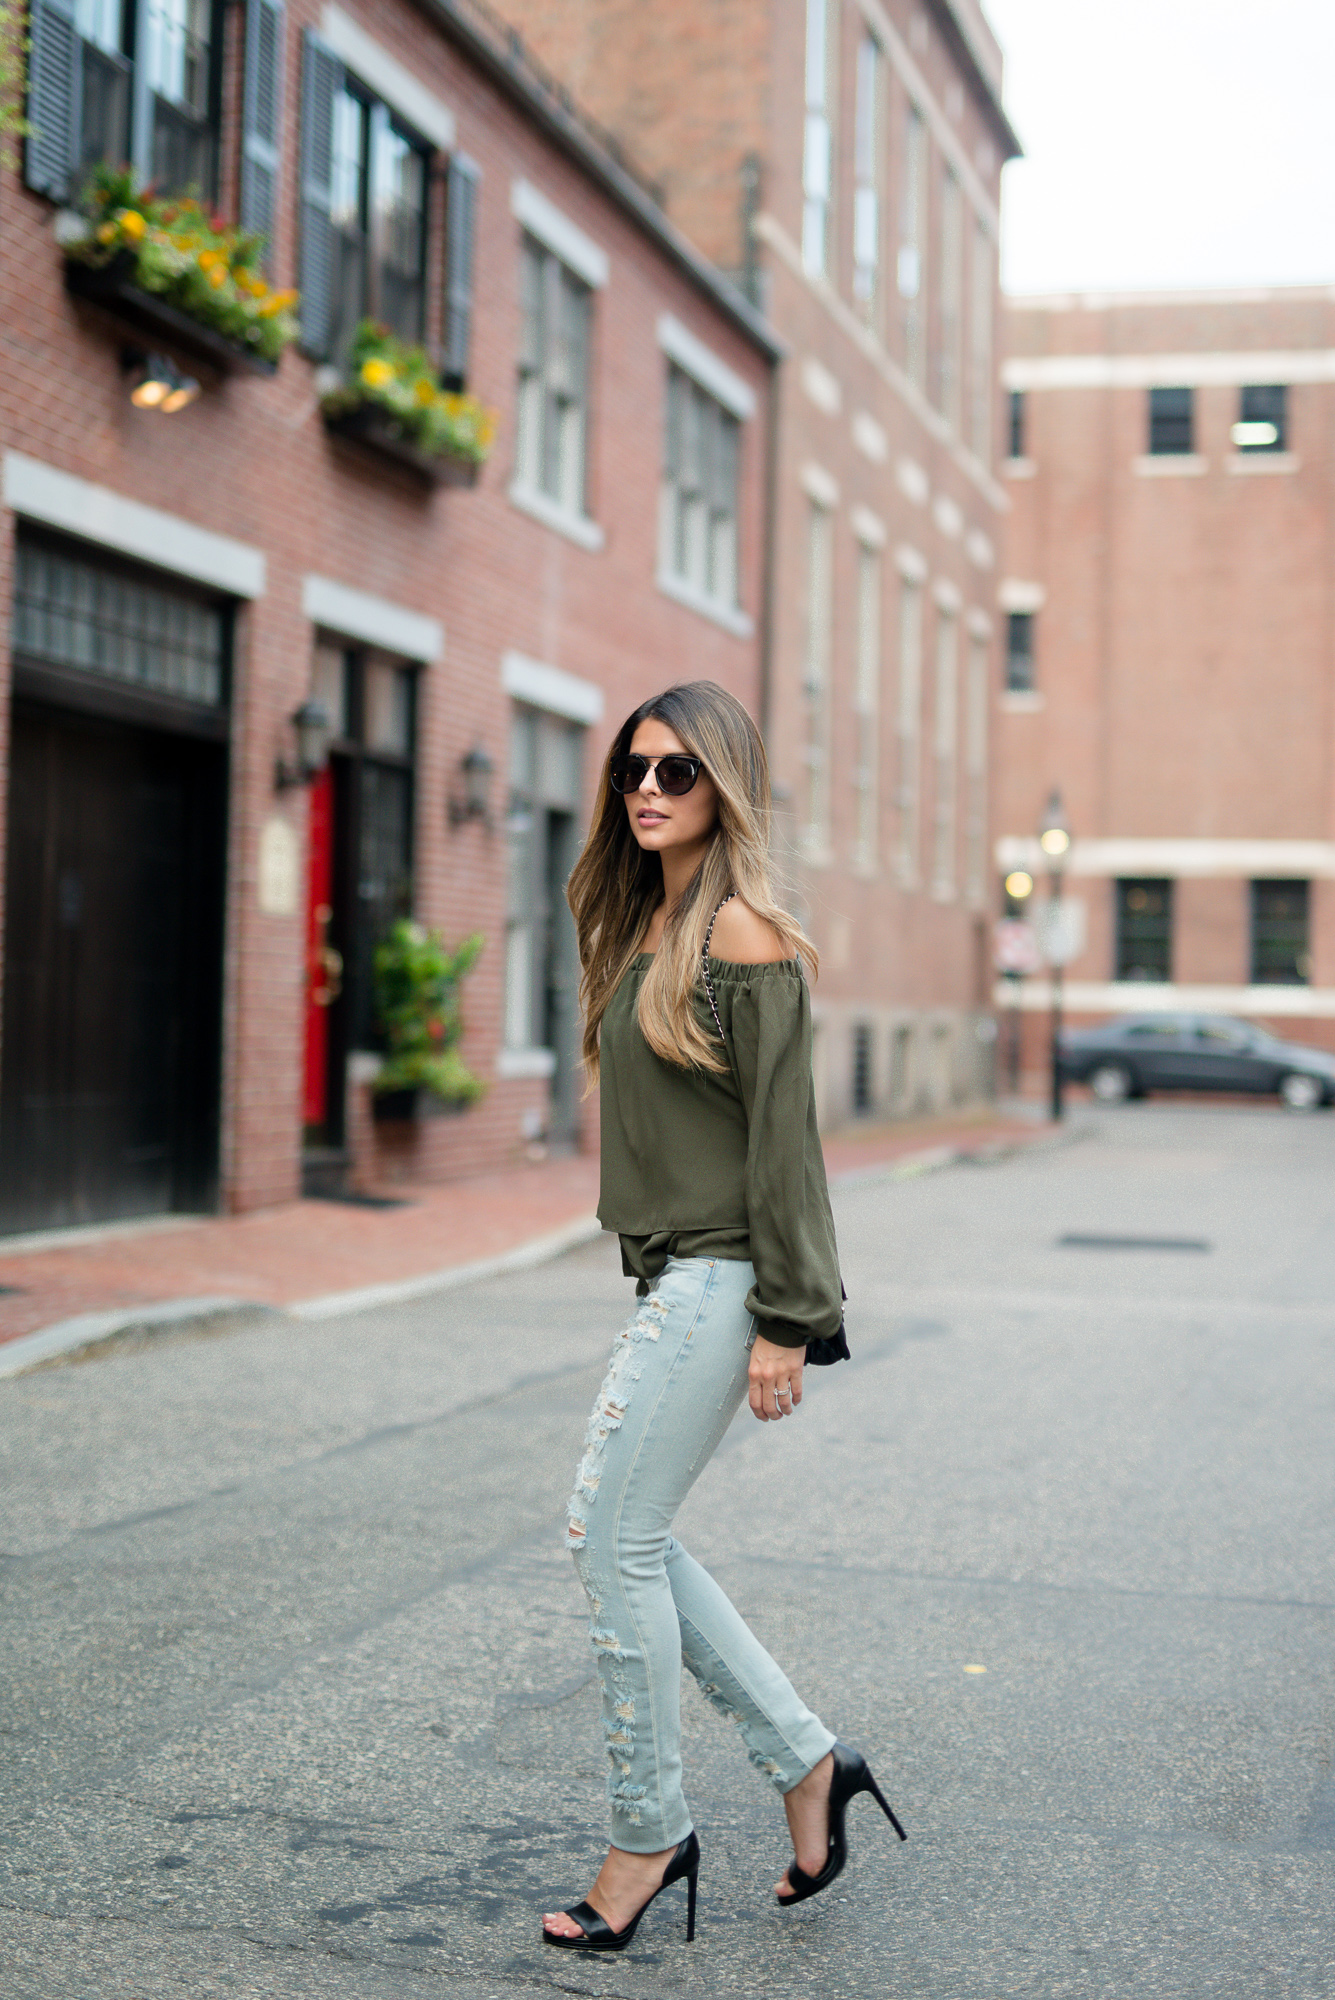 Ripped jeans and a khaki off the shoulder top. Pam Hetlinger shows us what this summer is all about. Top: Asos, Jeans: BlankNYC, Shoes: Saint Laurent, Sunglasses: Wonderland